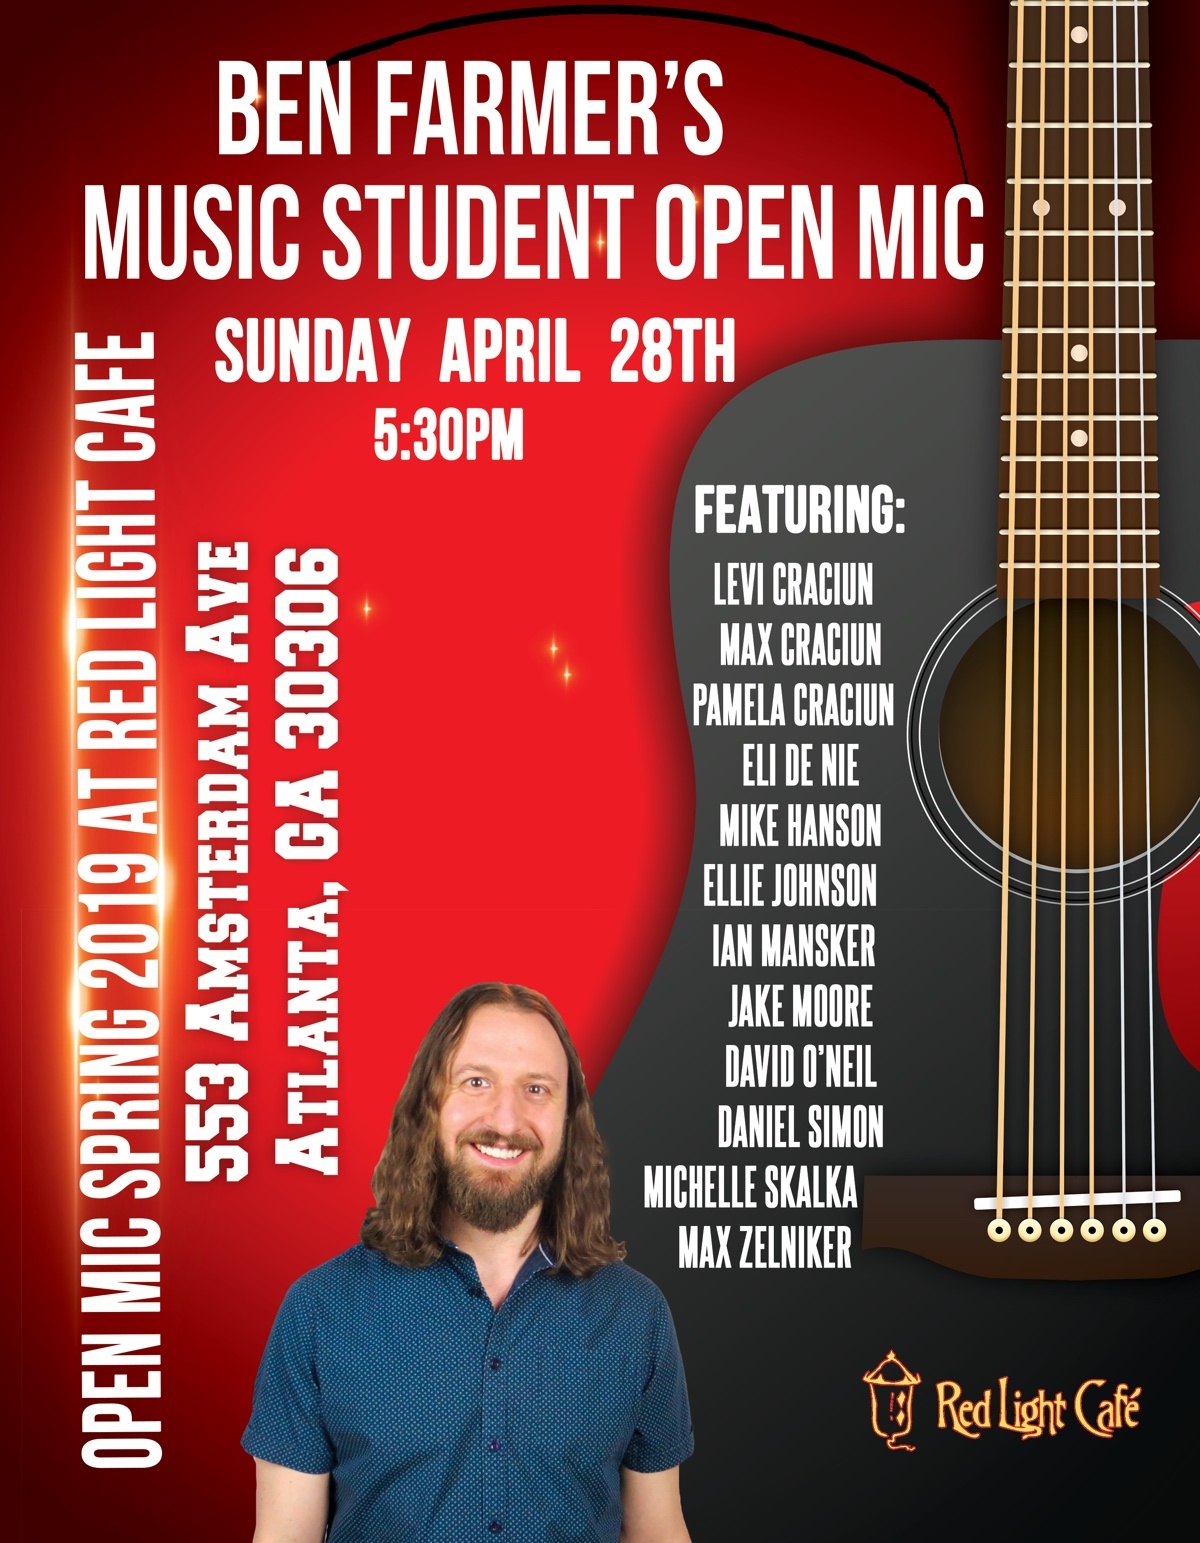 Ben Farmer's Music Student Open Mic Spring 2019 — April 28, 2019 — Red Light Café, Atlanta, GA